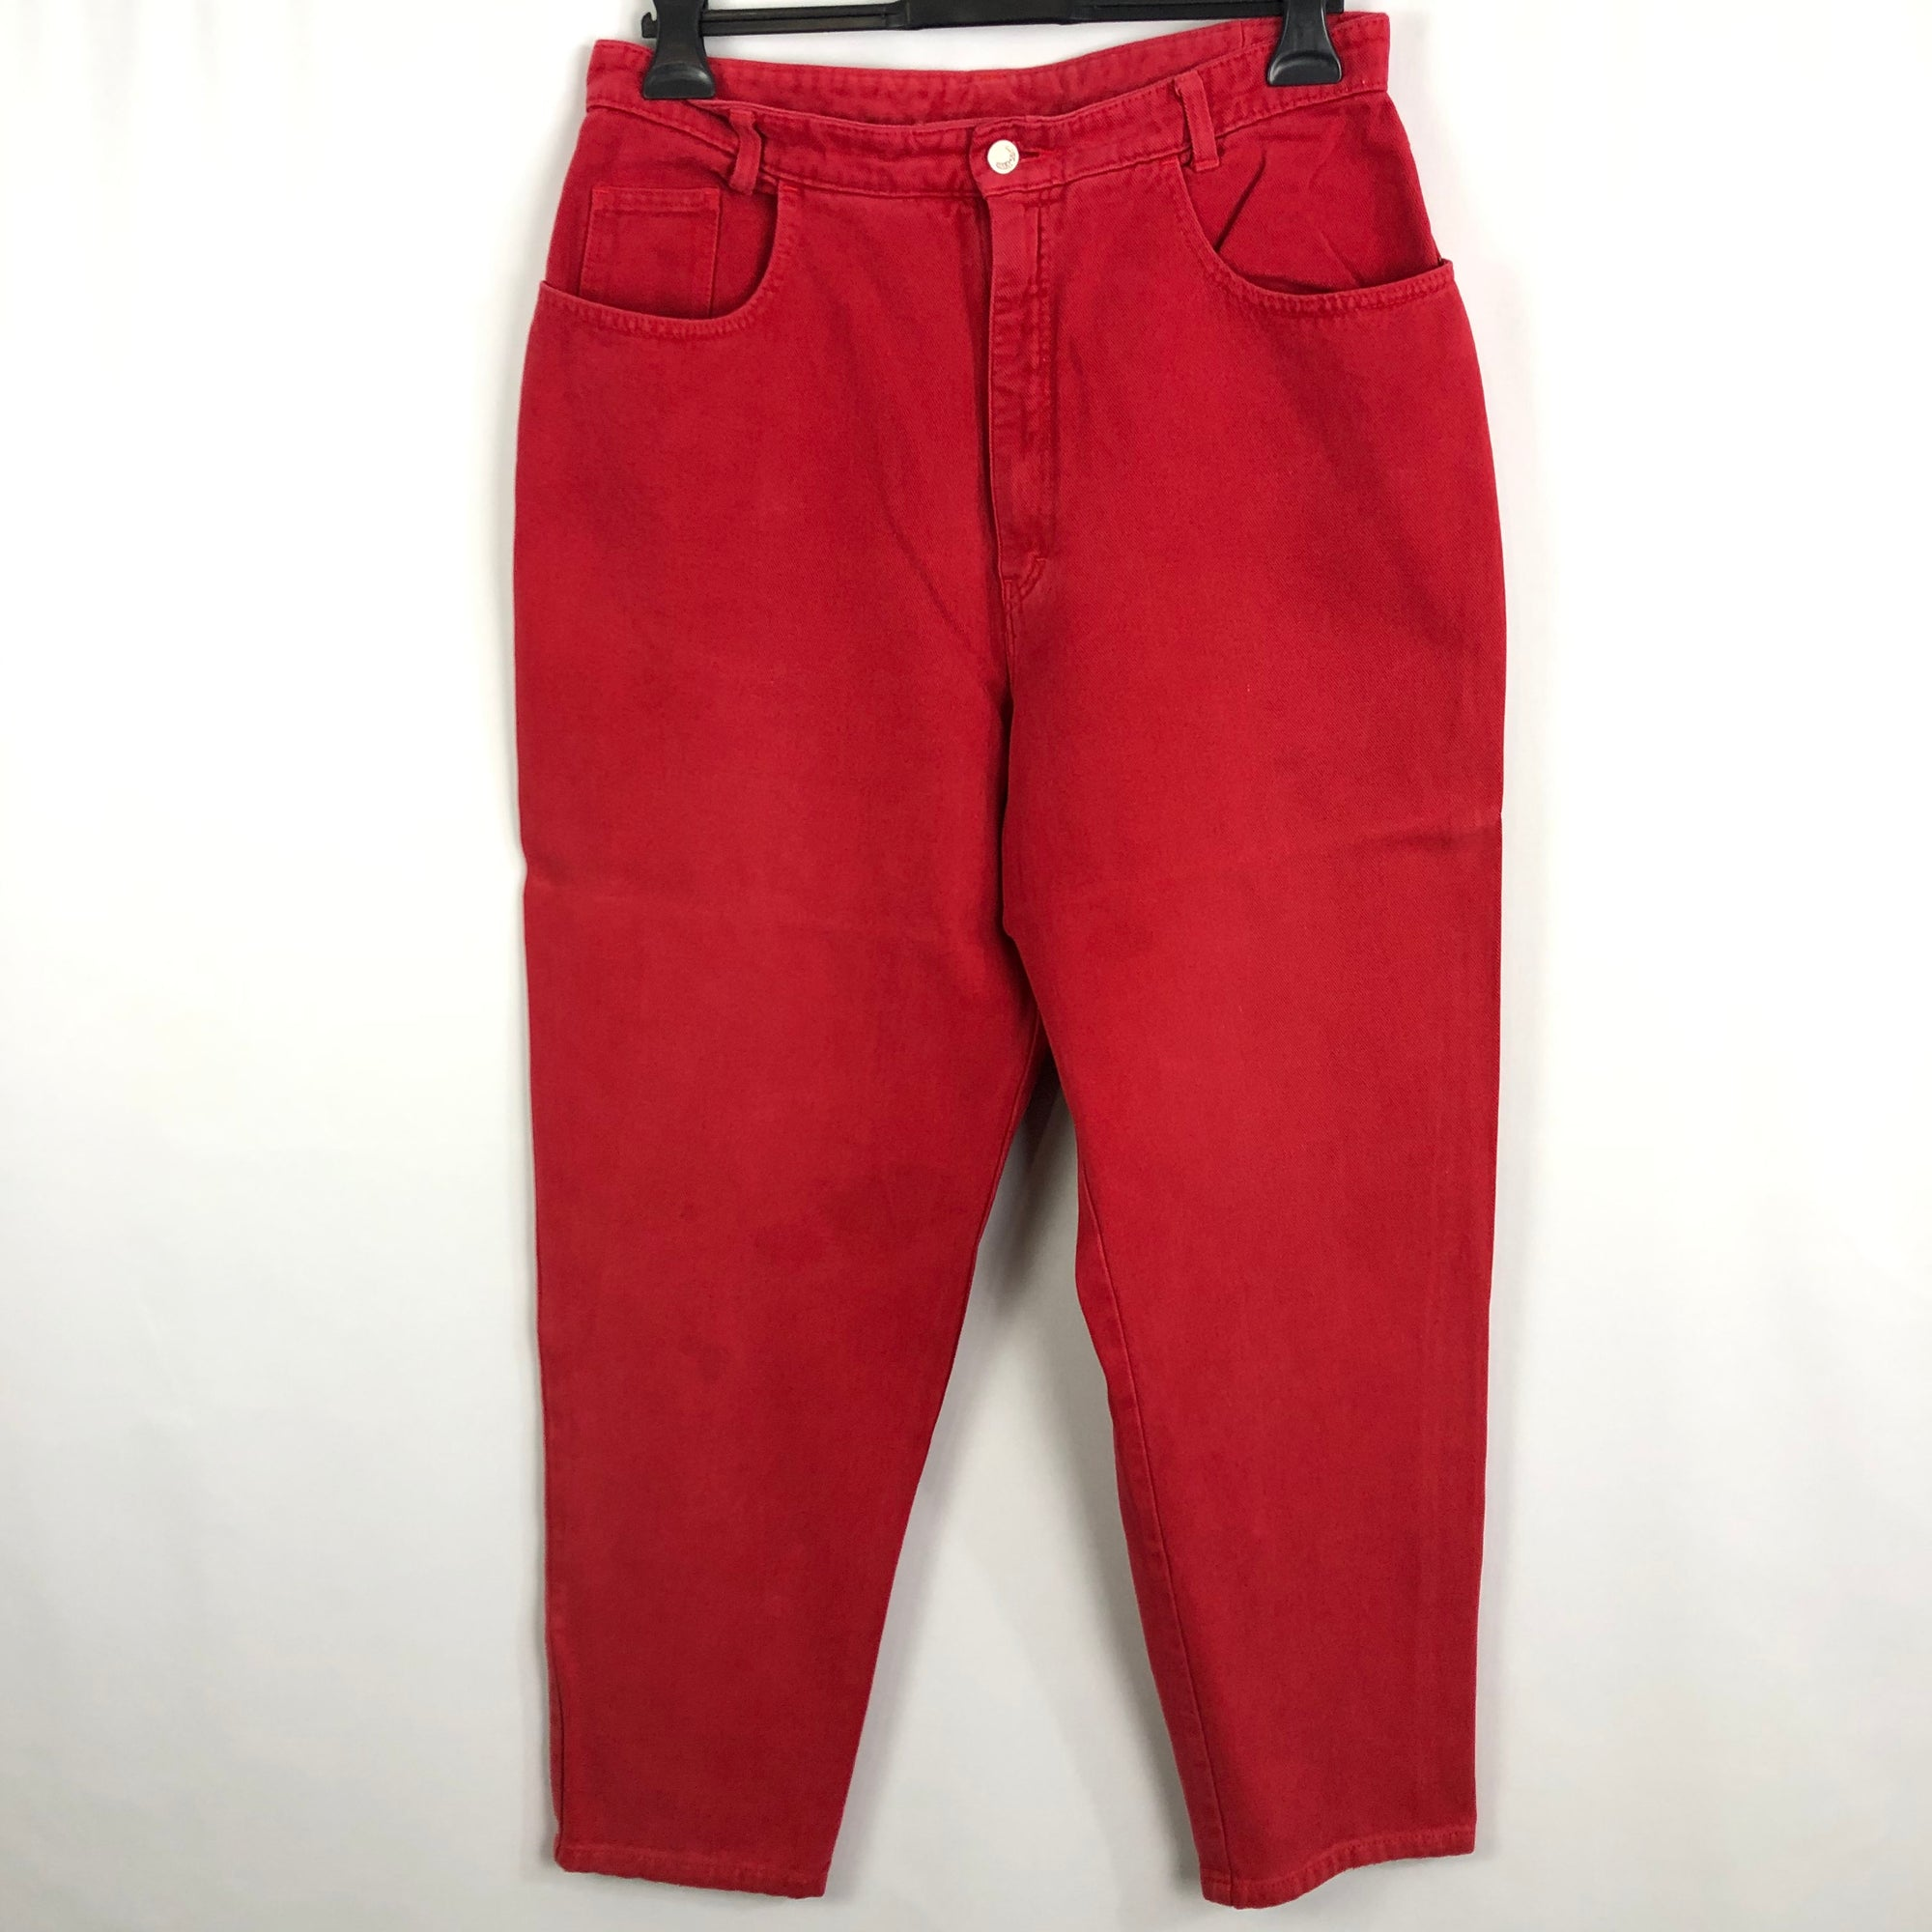 Vintage 90s Geiger Jeans in Red - W34